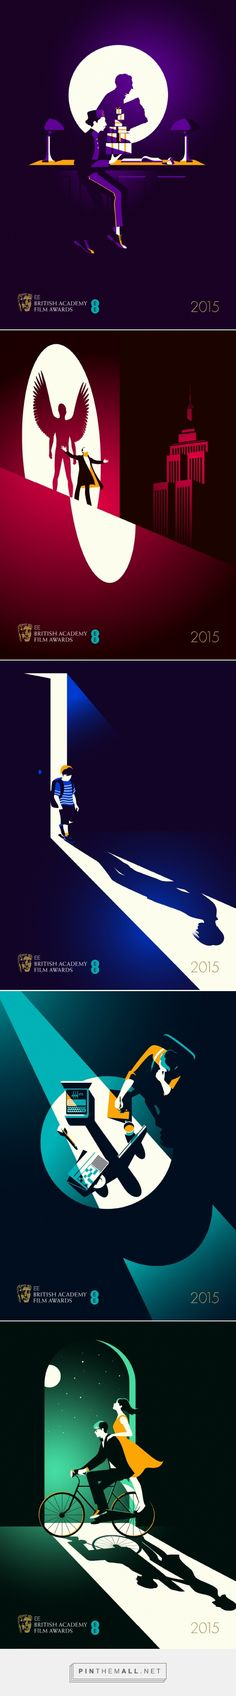 Illustrations Movie Posters for BAFTA 2015